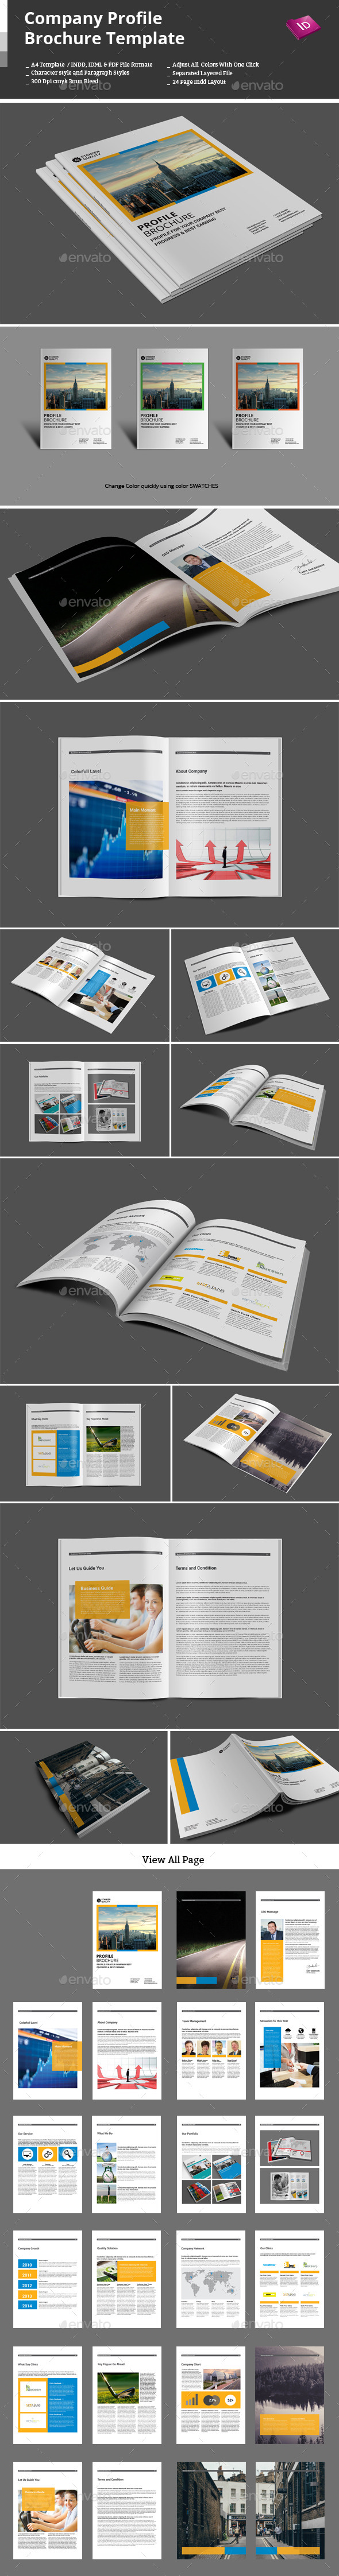 GraphicRiver Company Profile Brochure Template 9664535